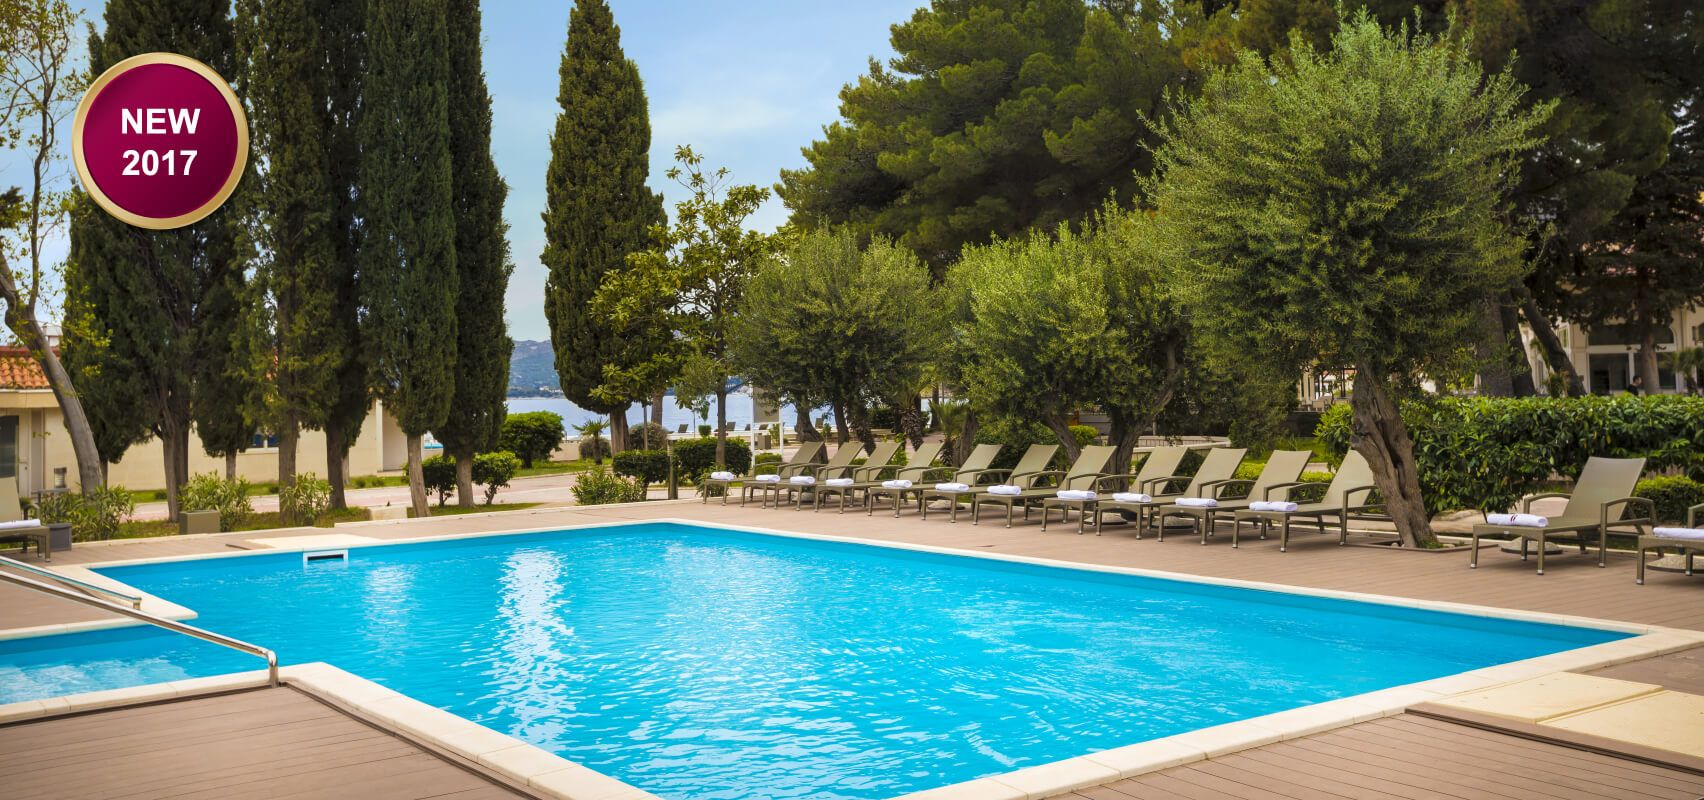 Hotel Epidaurus Cavtat In Croatia Remisens